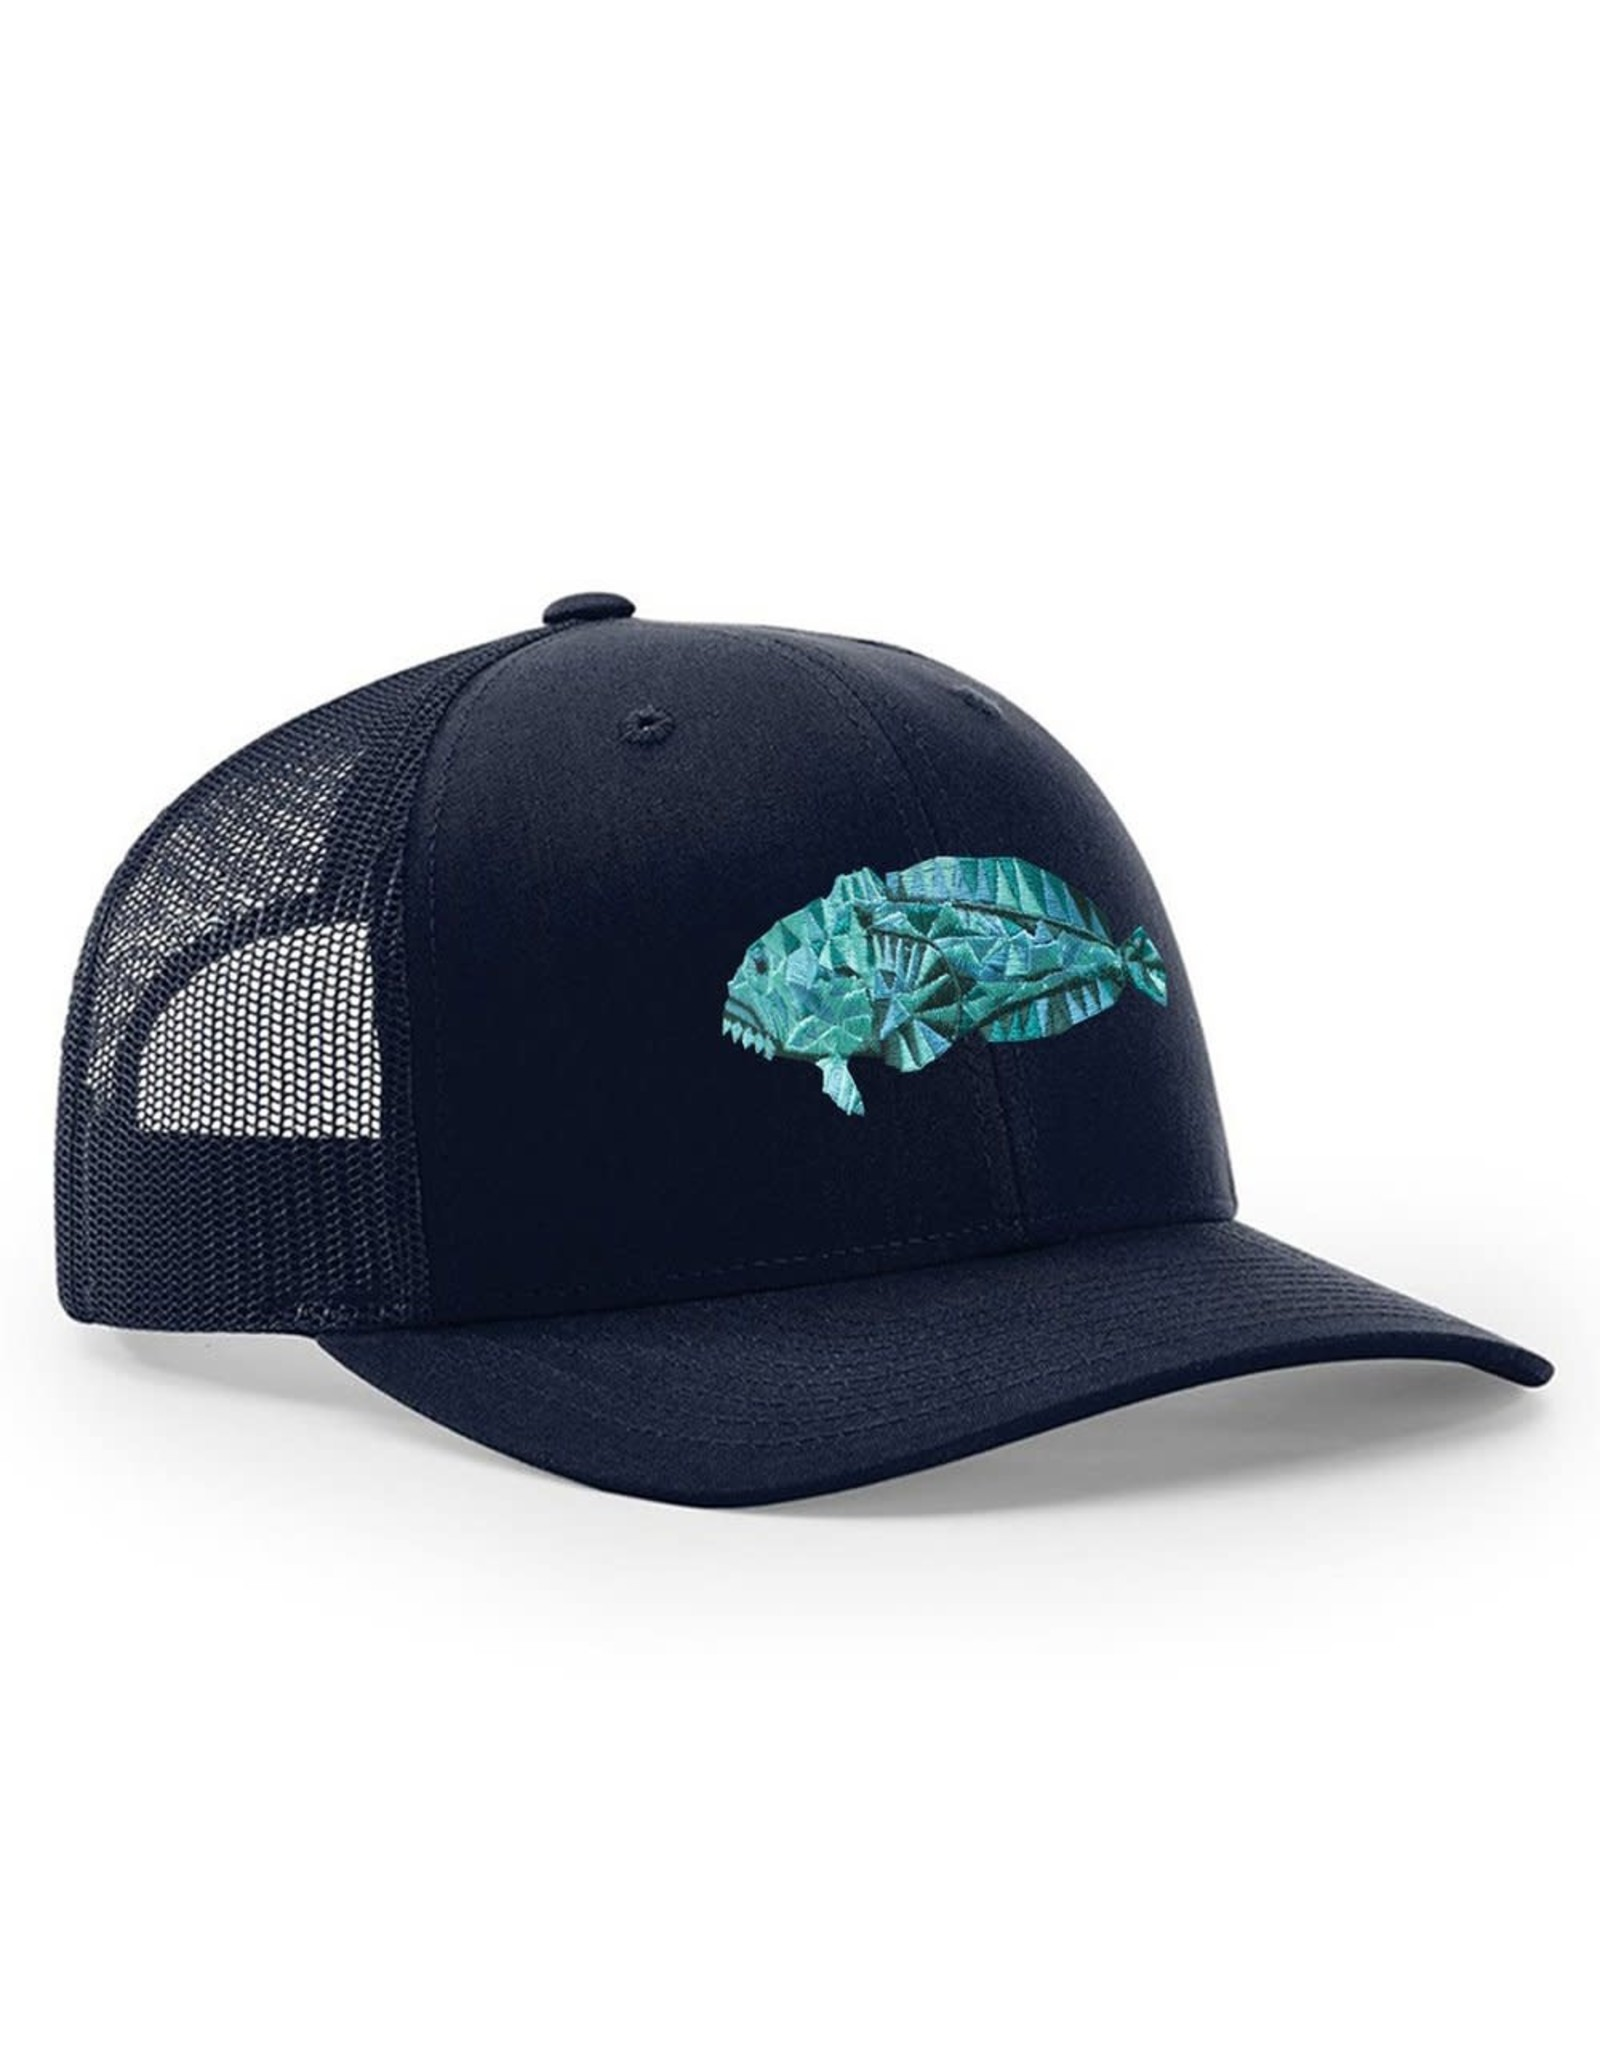 Toadfish Structured Snapback - Navy on Navy - Toadfish embroidery